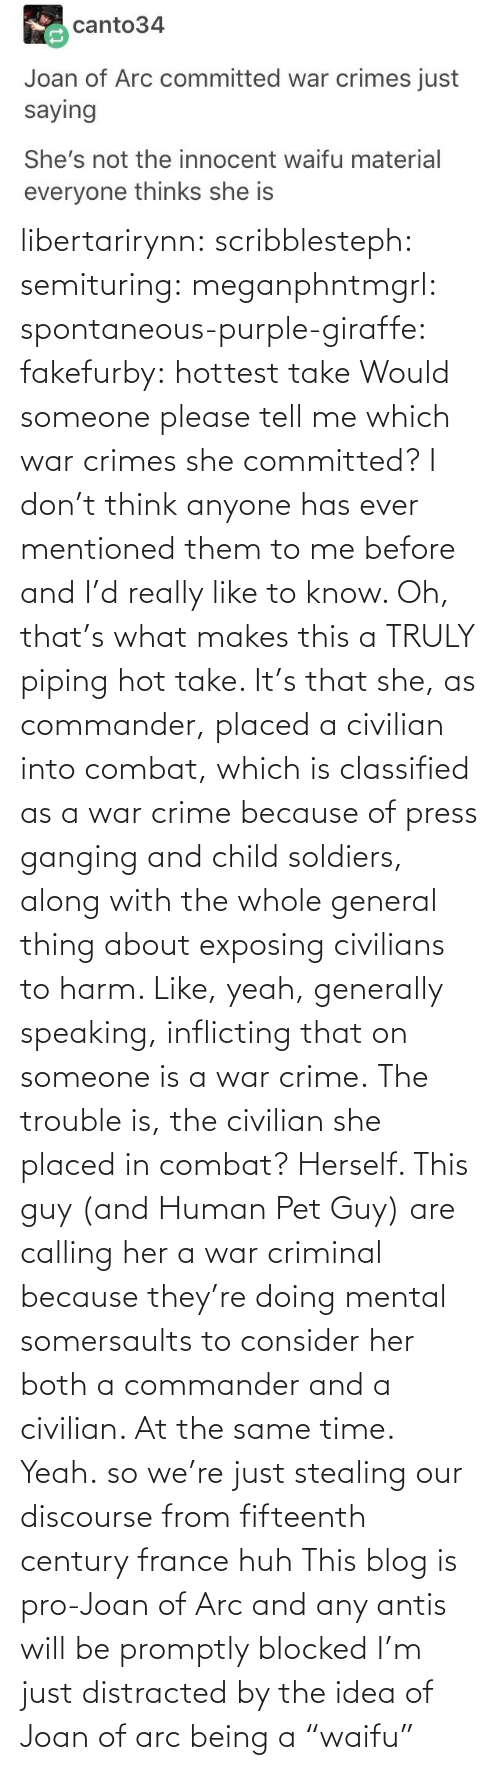 "Is A: libertarirynn: scribblesteph:  semituring:  meganphntmgrl:  spontaneous-purple-giraffe:   fakefurby: hottest take  Would someone please tell me which war crimes she committed? I don't think anyone has ever mentioned them to me before and I'd really like to know.    Oh, that's what makes this a TRULY piping hot take. It's that she, as commander, placed a civilian into combat, which is classified as a war crime because of press ganging and child soldiers, along with the whole general thing about exposing civilians to harm. Like, yeah, generally speaking, inflicting that on someone is a war crime. The trouble is, the civilian she placed in combat? Herself.  This guy (and Human Pet Guy) are calling her a war criminal because they're doing mental somersaults to consider her both a commander and a civilian. At the same time.  Yeah.  so we're just stealing our discourse from fifteenth century france huh   This blog is pro-Joan of Arc and any antis will be promptly blocked   I'm just distracted by the idea of Joan of arc being a ""waifu"""